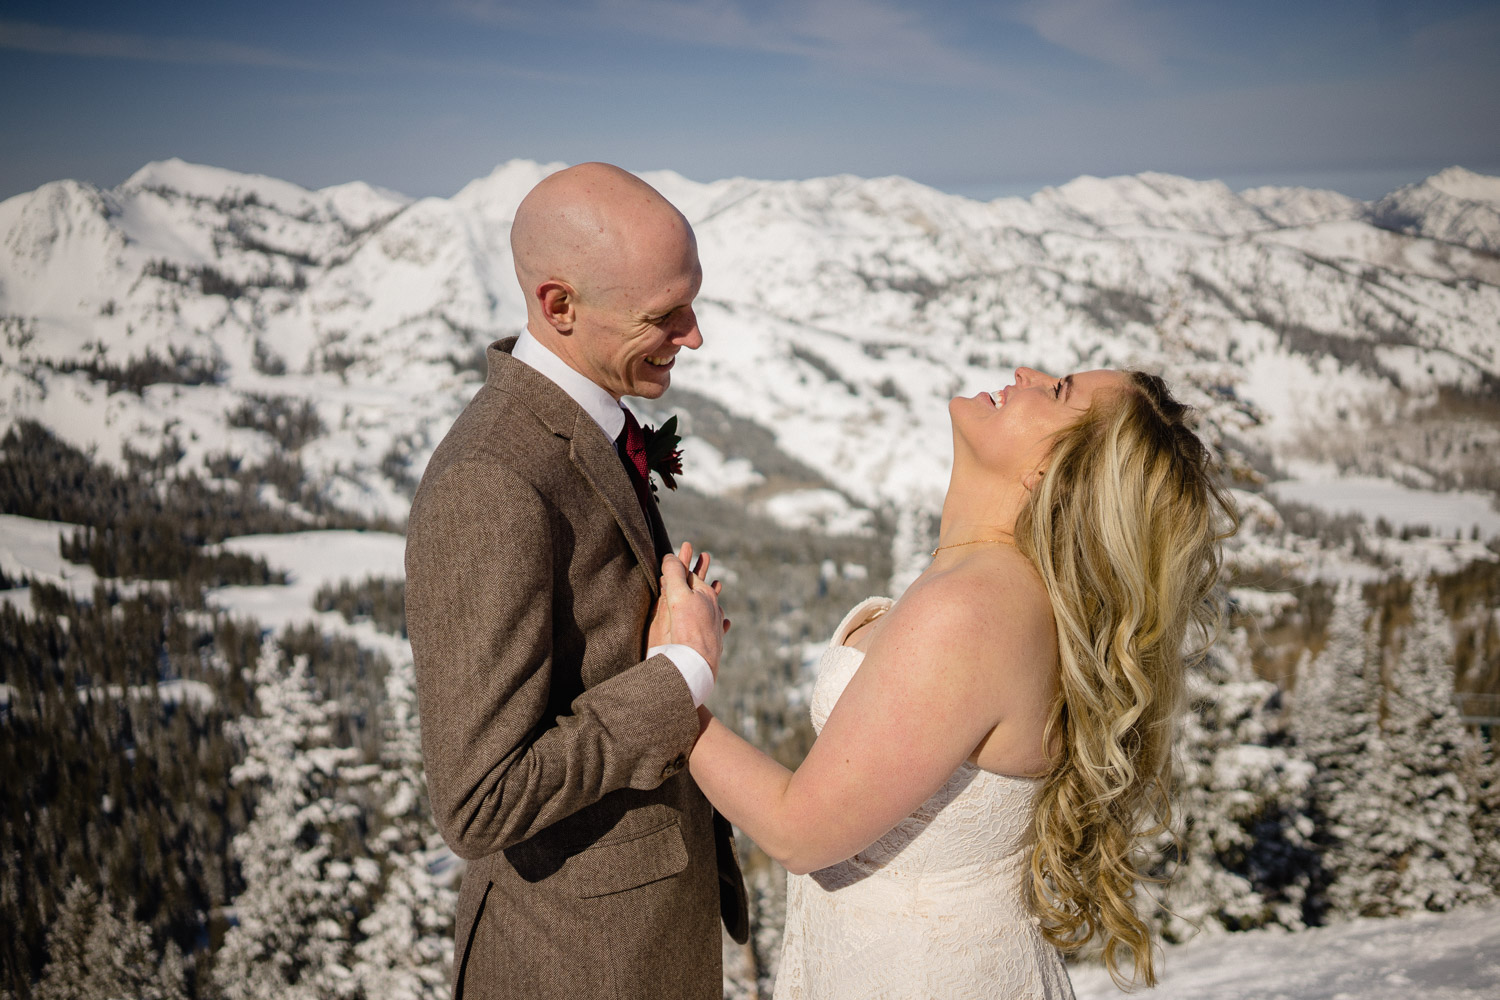 groom making bride laugh on snowy mountain